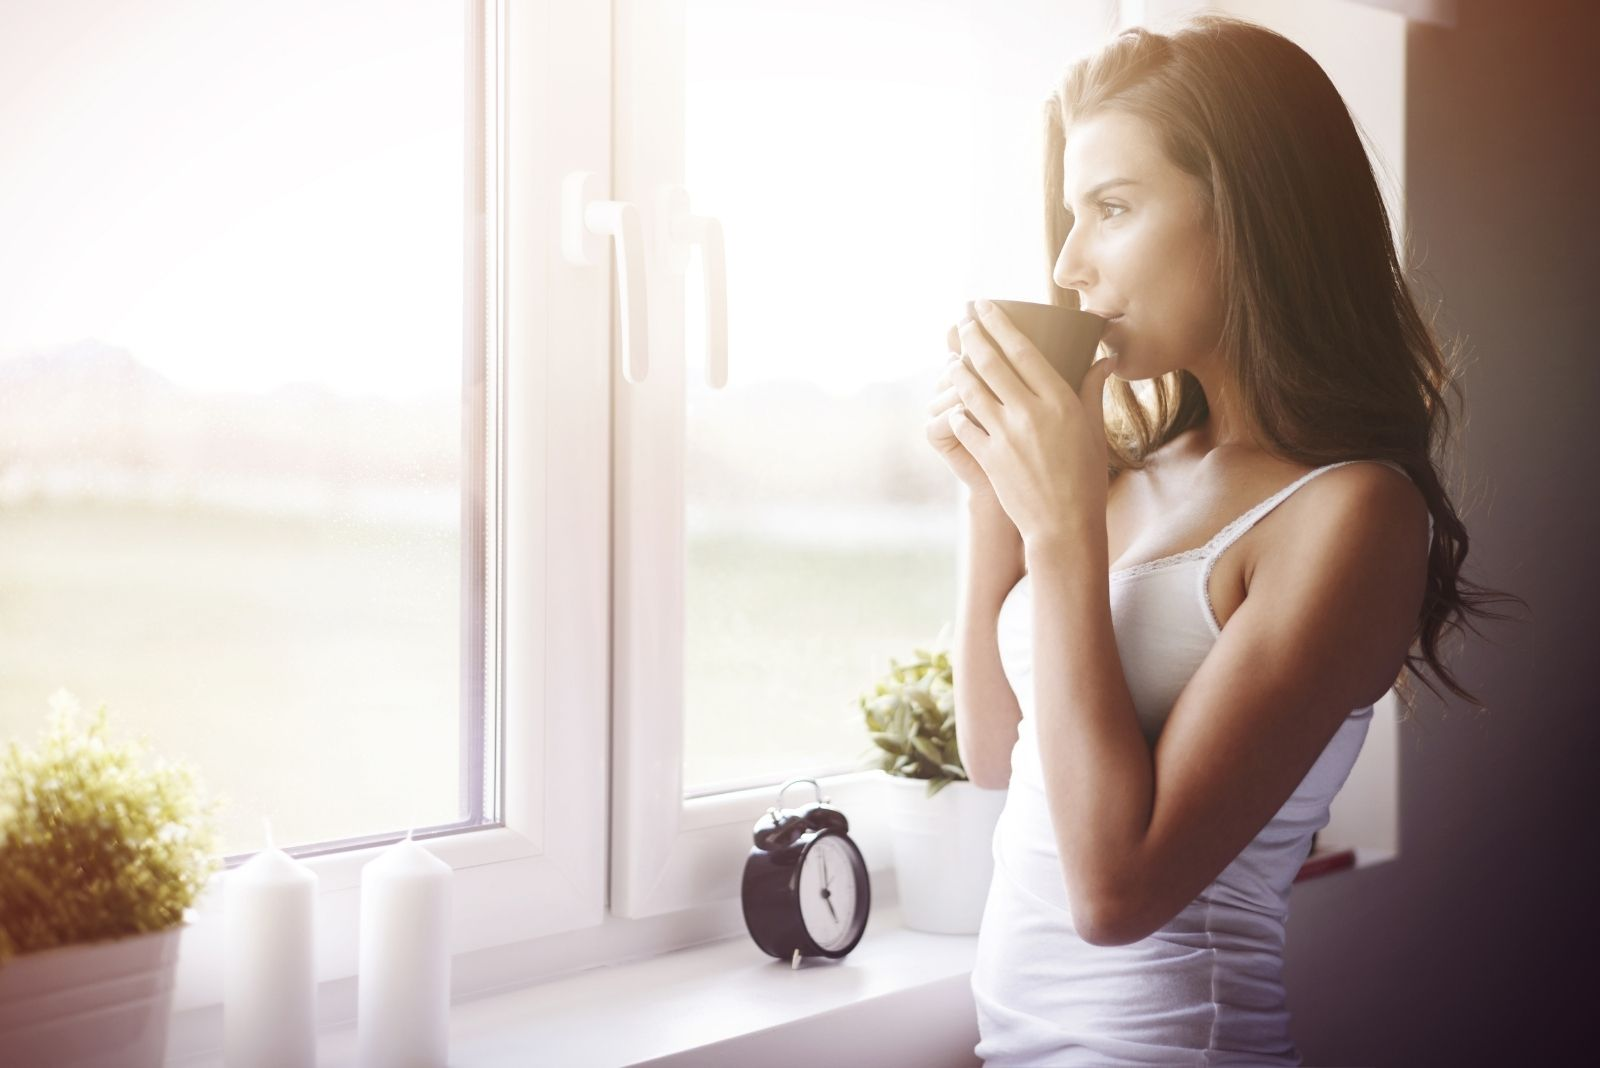 woman drinking coffee looking outside the window with an alarm clock nearby